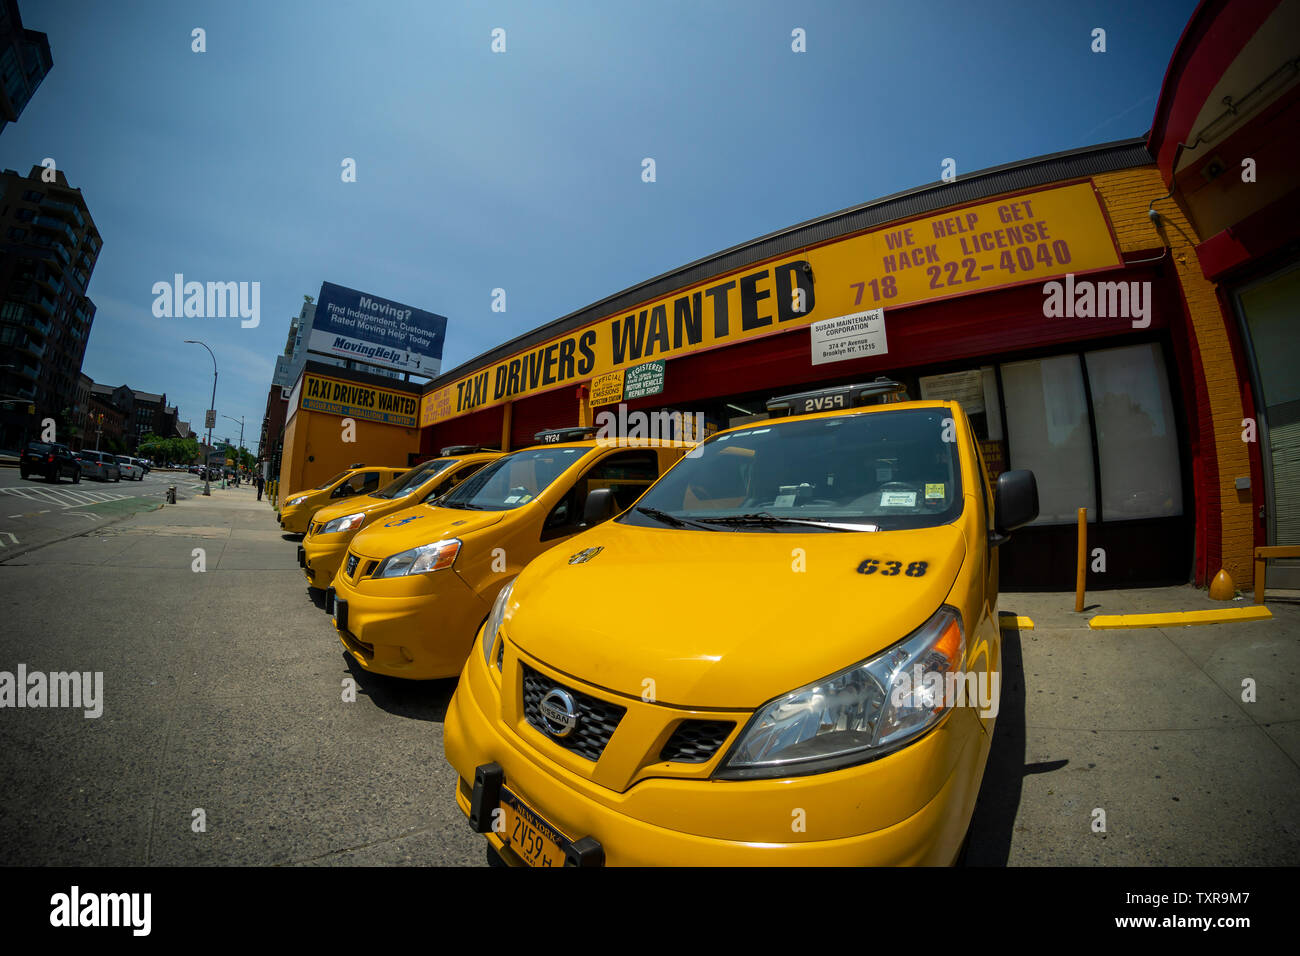 Unused taxis, without drivers, in a taxicab garage in the Park Slope neighborhood of Brooklyn in New York on Sunday, June 23, 2019. With the growth of ride sharing apps such as Lyft and Uber people are abandoning taxis as their preferred form of transportation causing the inflated prices of medallions to plummet. (© Richard B. Levine) - Stock Image